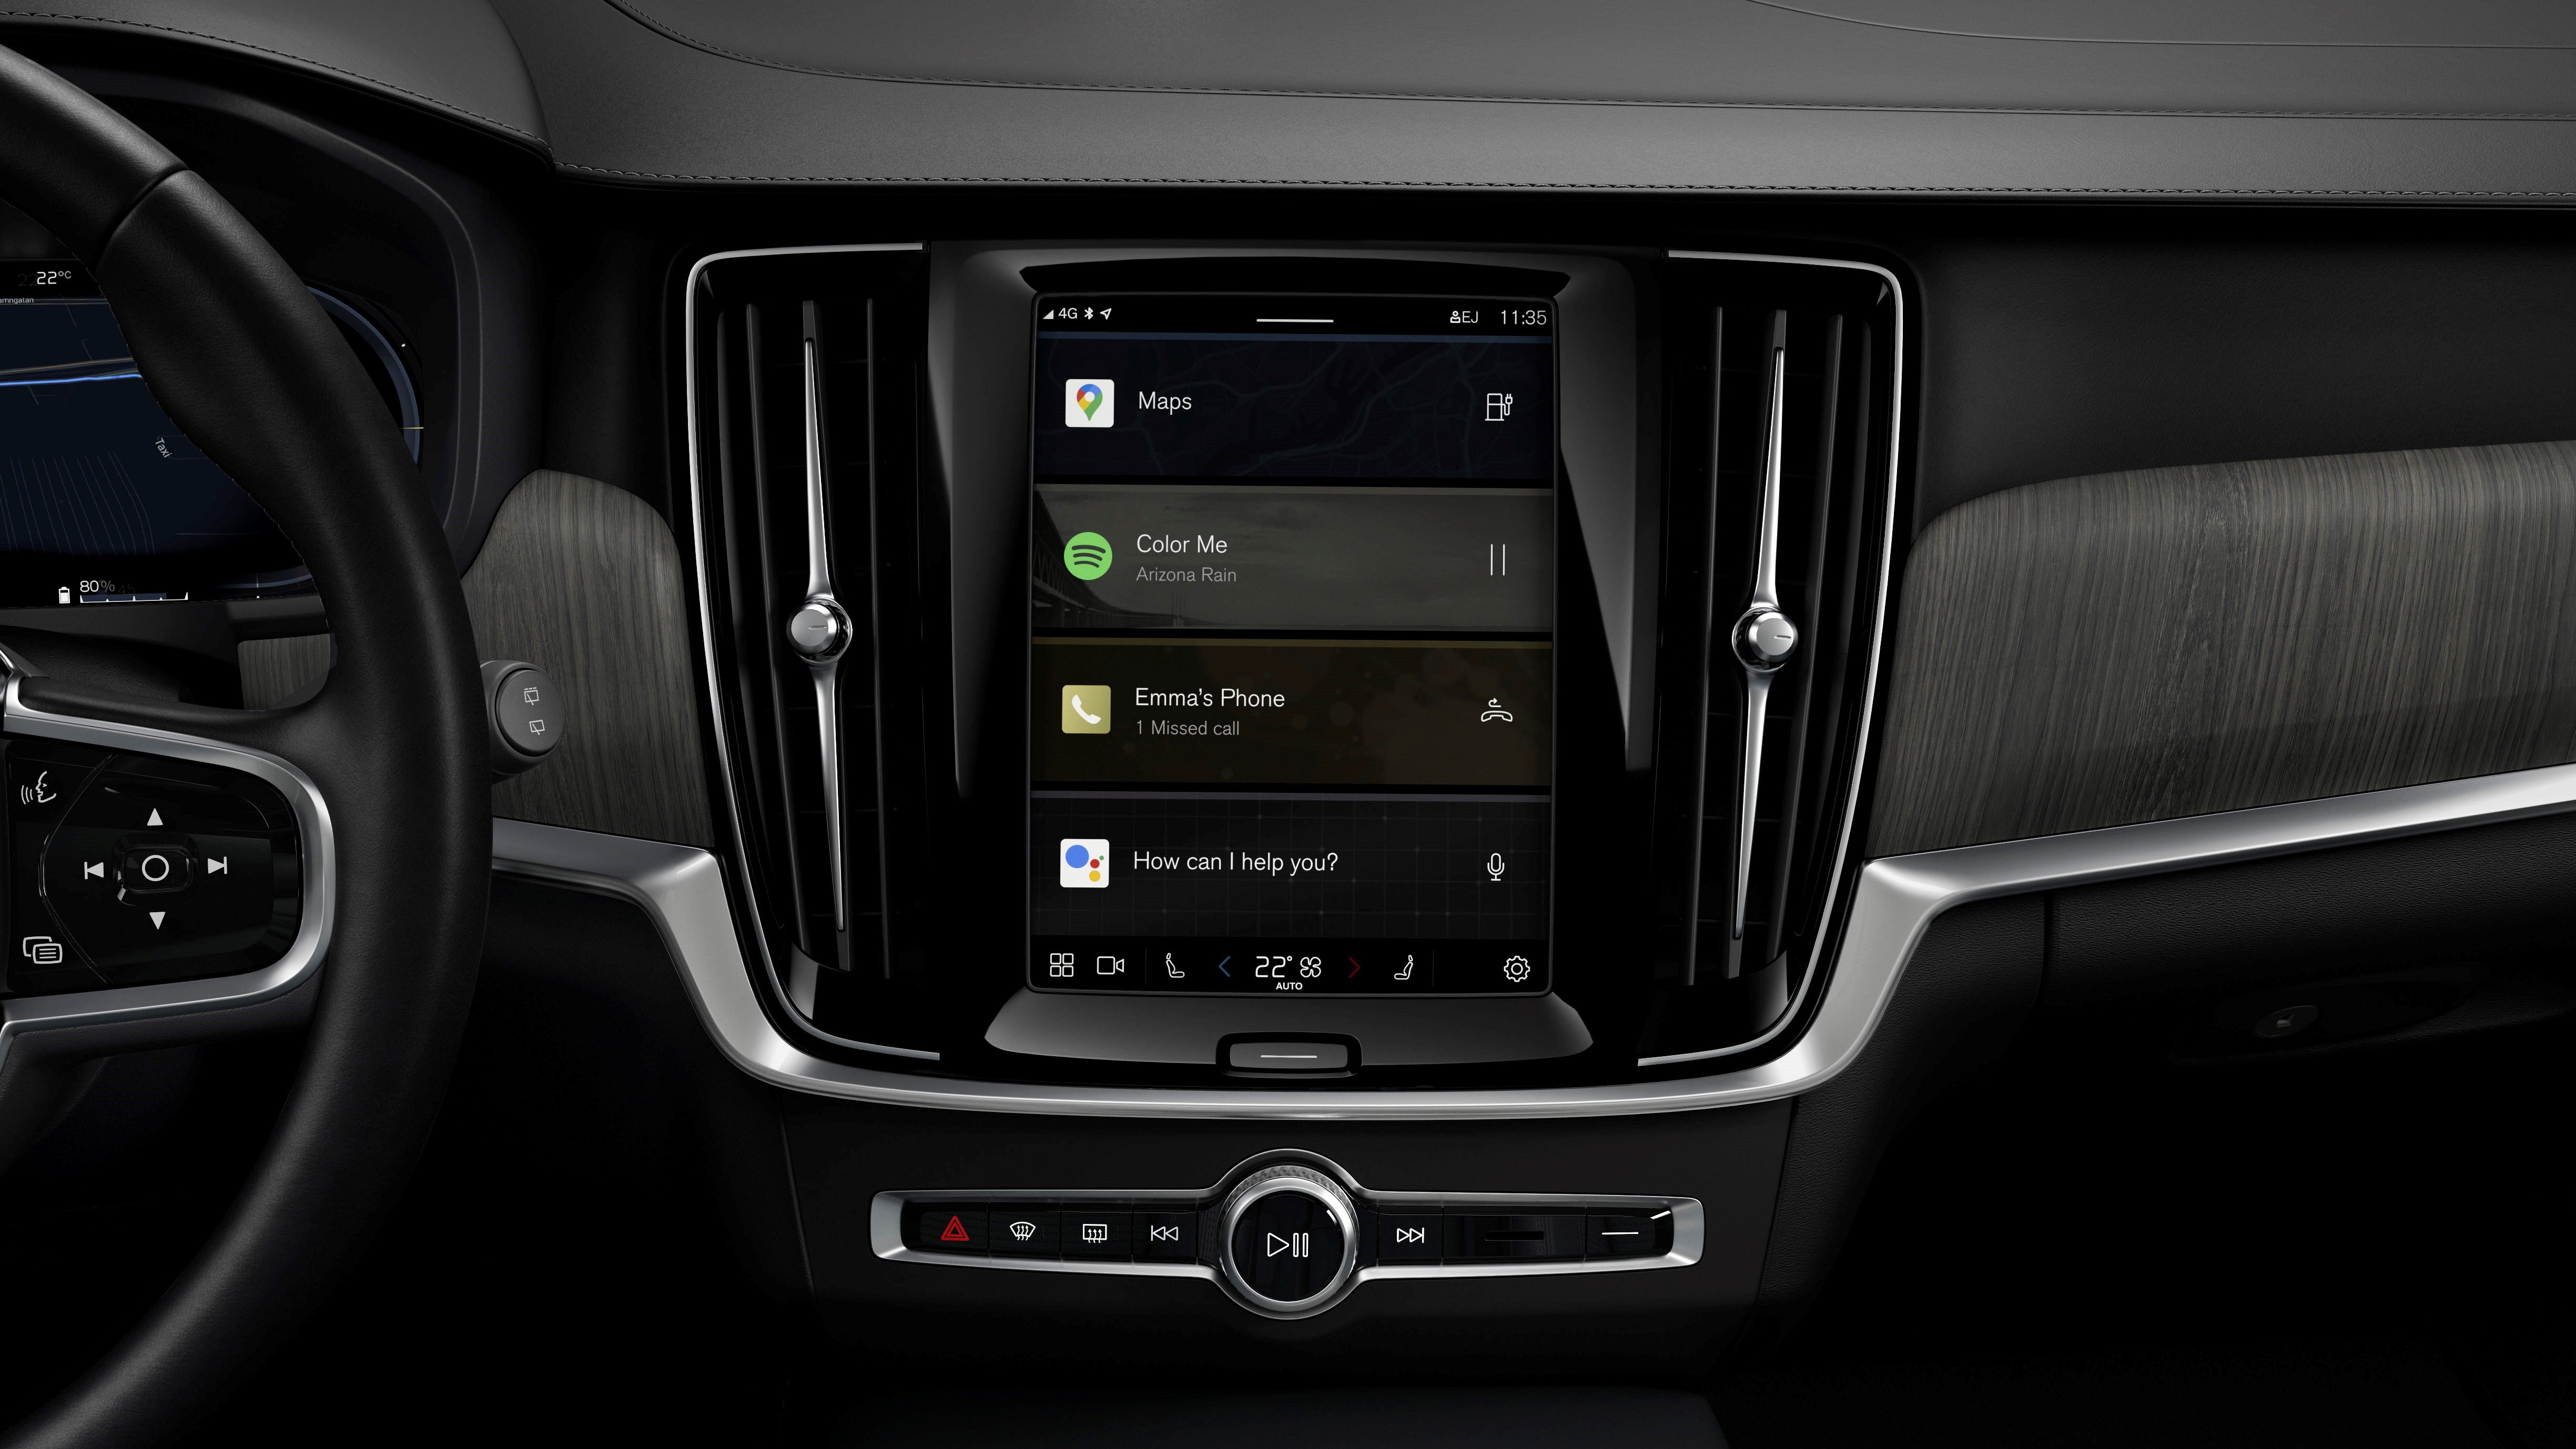 279246_Volvo_Cars_brings_infotainment_system_with_Google_built_in_to_more_models